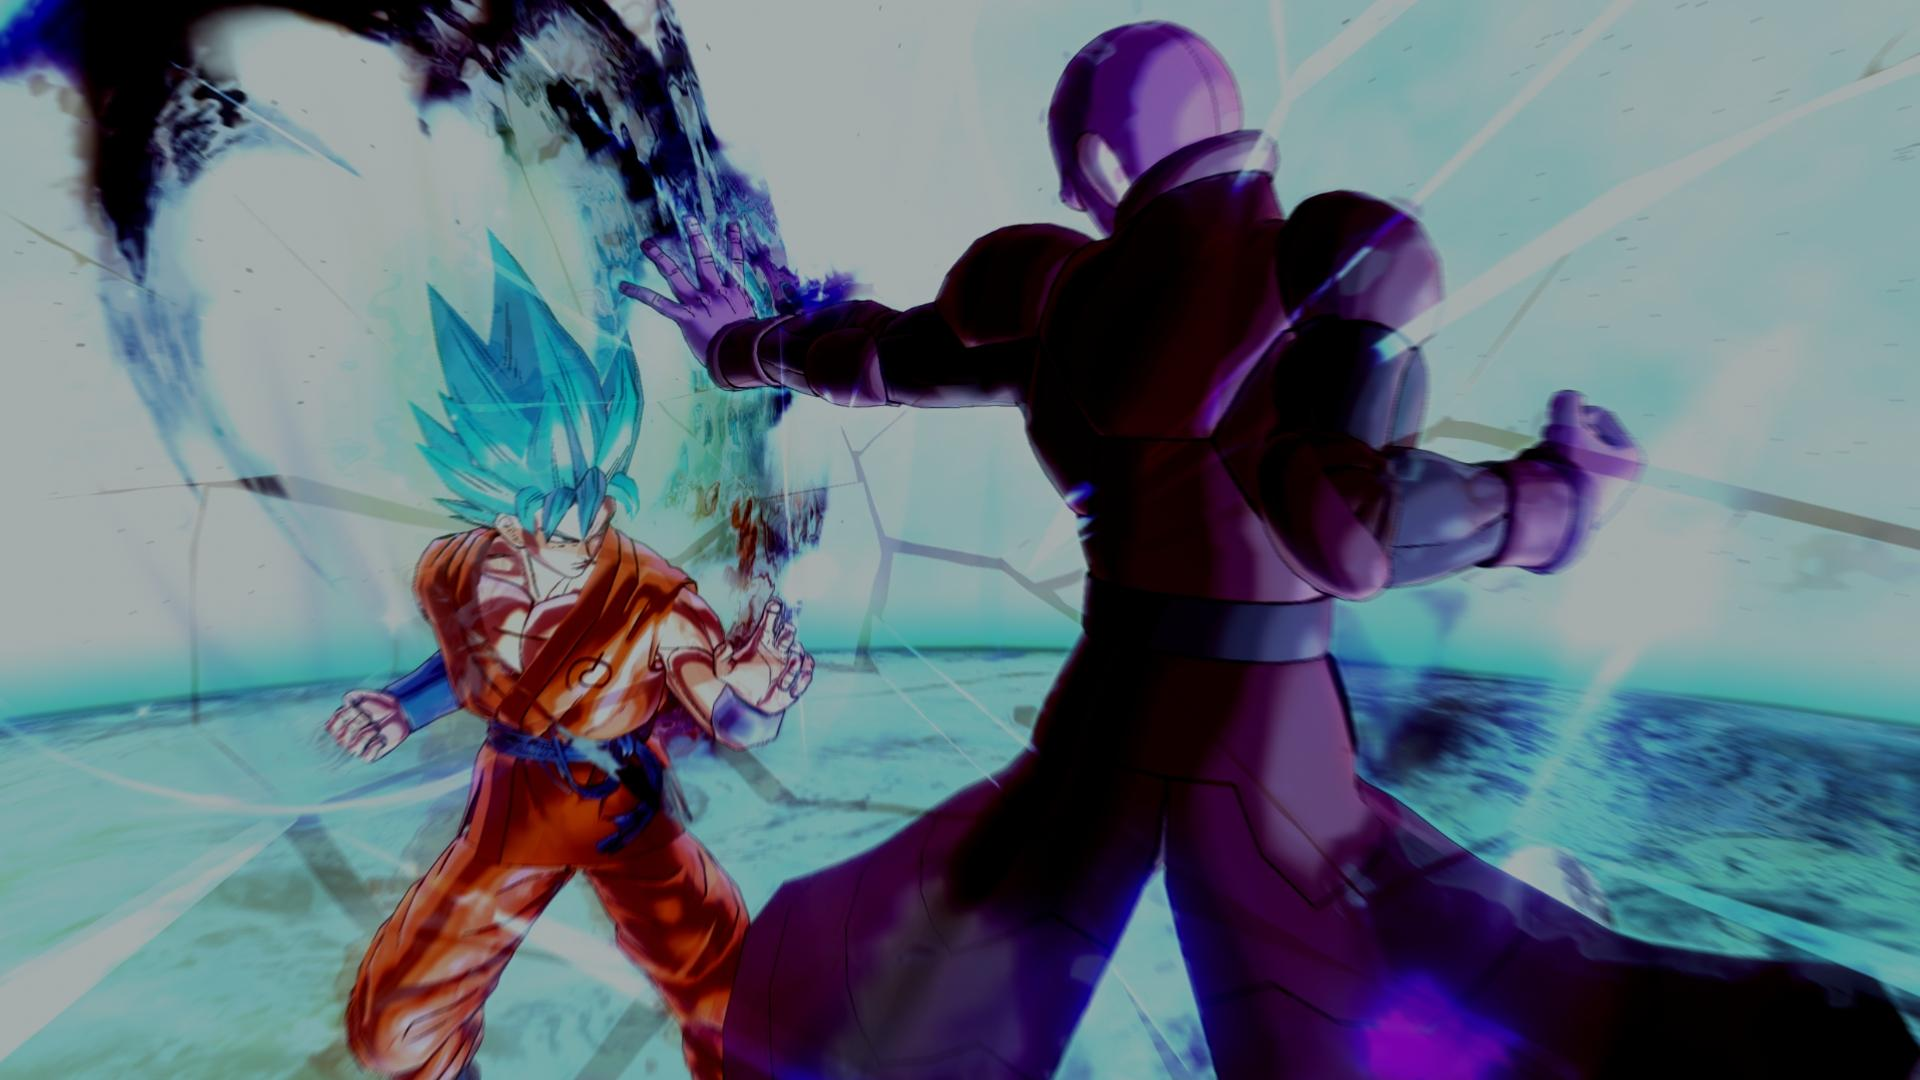 'Dragon Ball Xenoverse 2': Free Epic DLCs That You Should Not Miss Out; New Characters, Mentors, Techniques, More